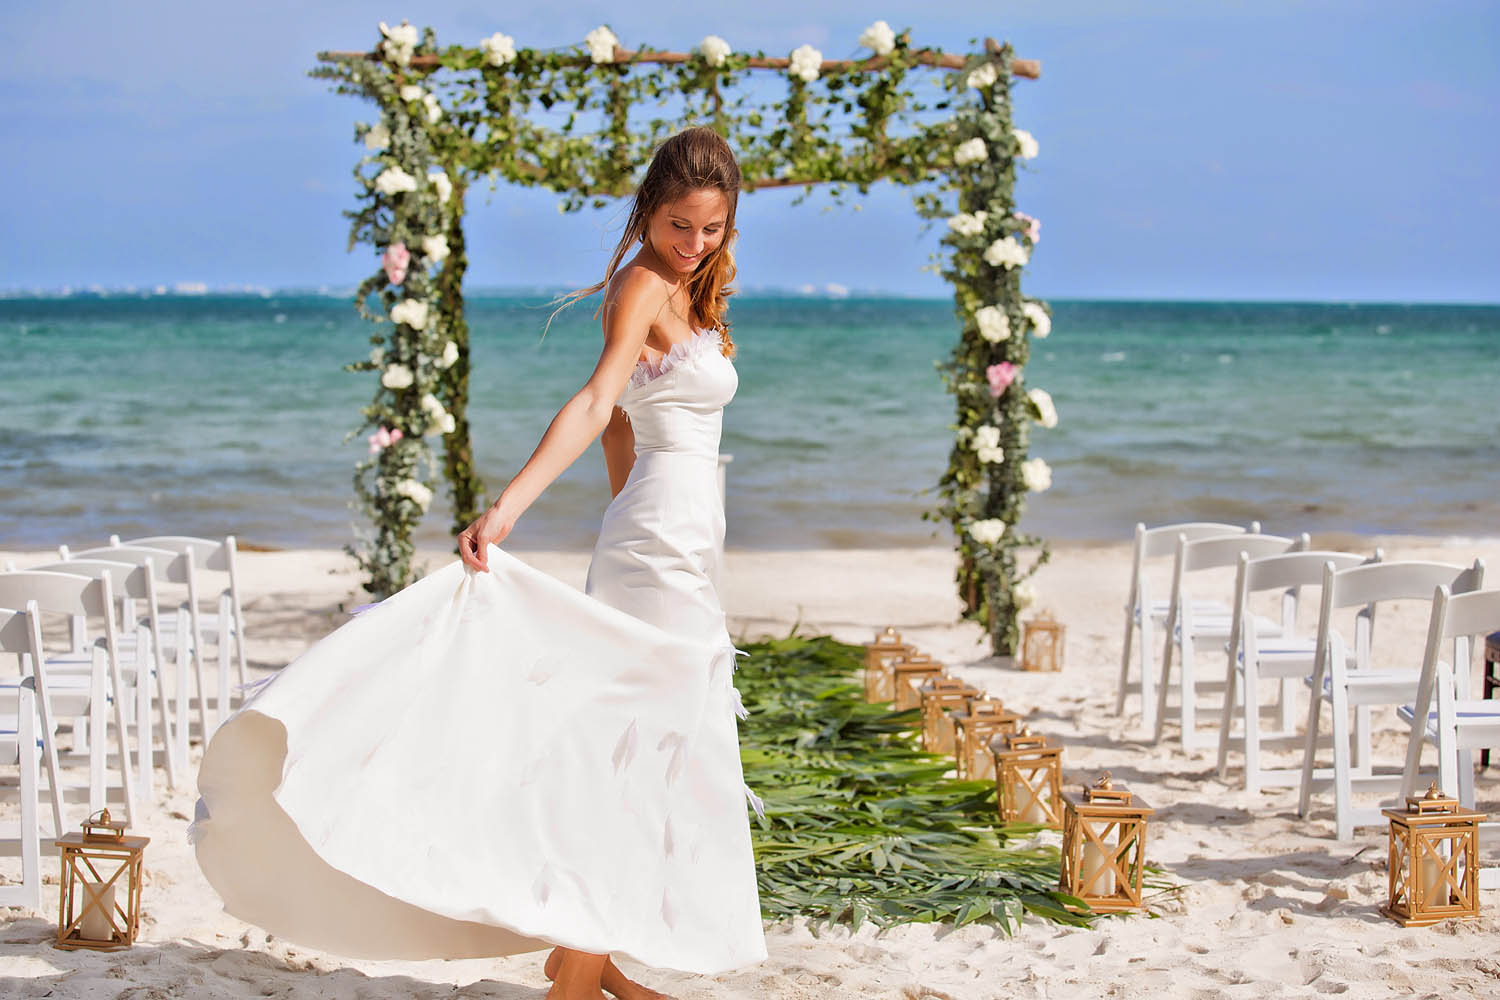 Fly me to the moon - wedding package